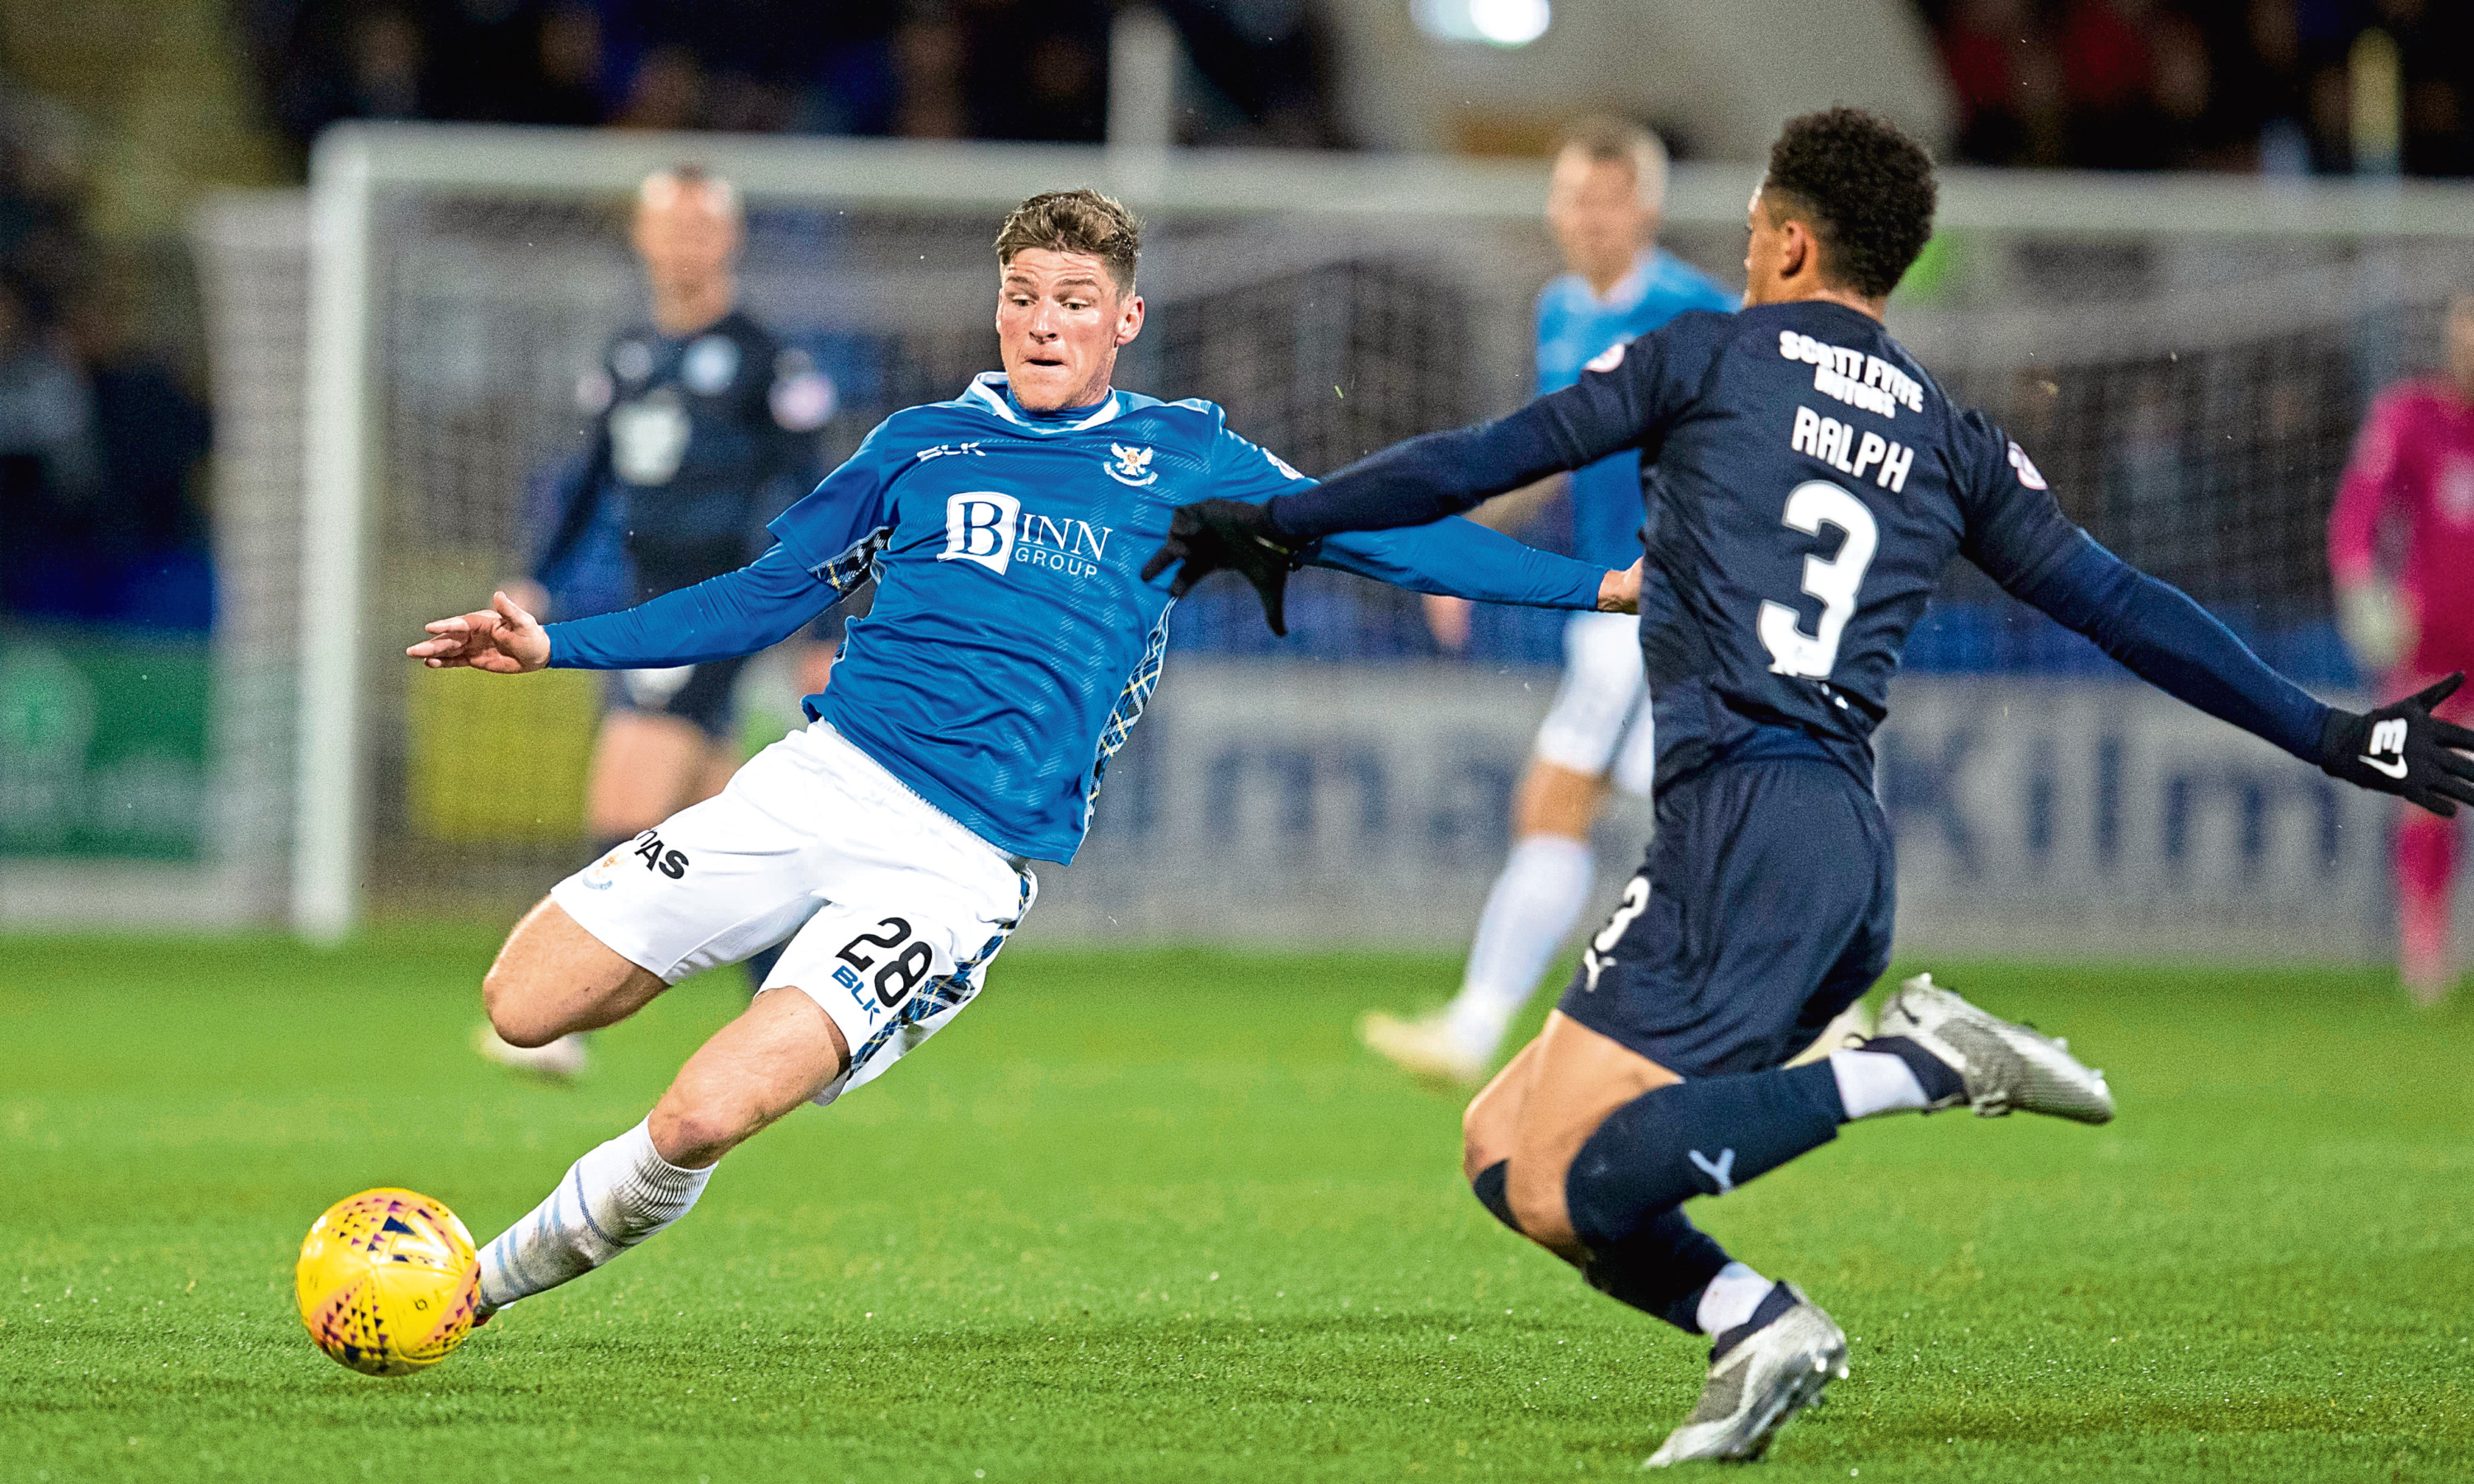 St Johnstone midfielder Ross Callachan and Dundee left-back Nathan Ralph compete for the ball during Saints' 2-0 victory over the Dark Blues